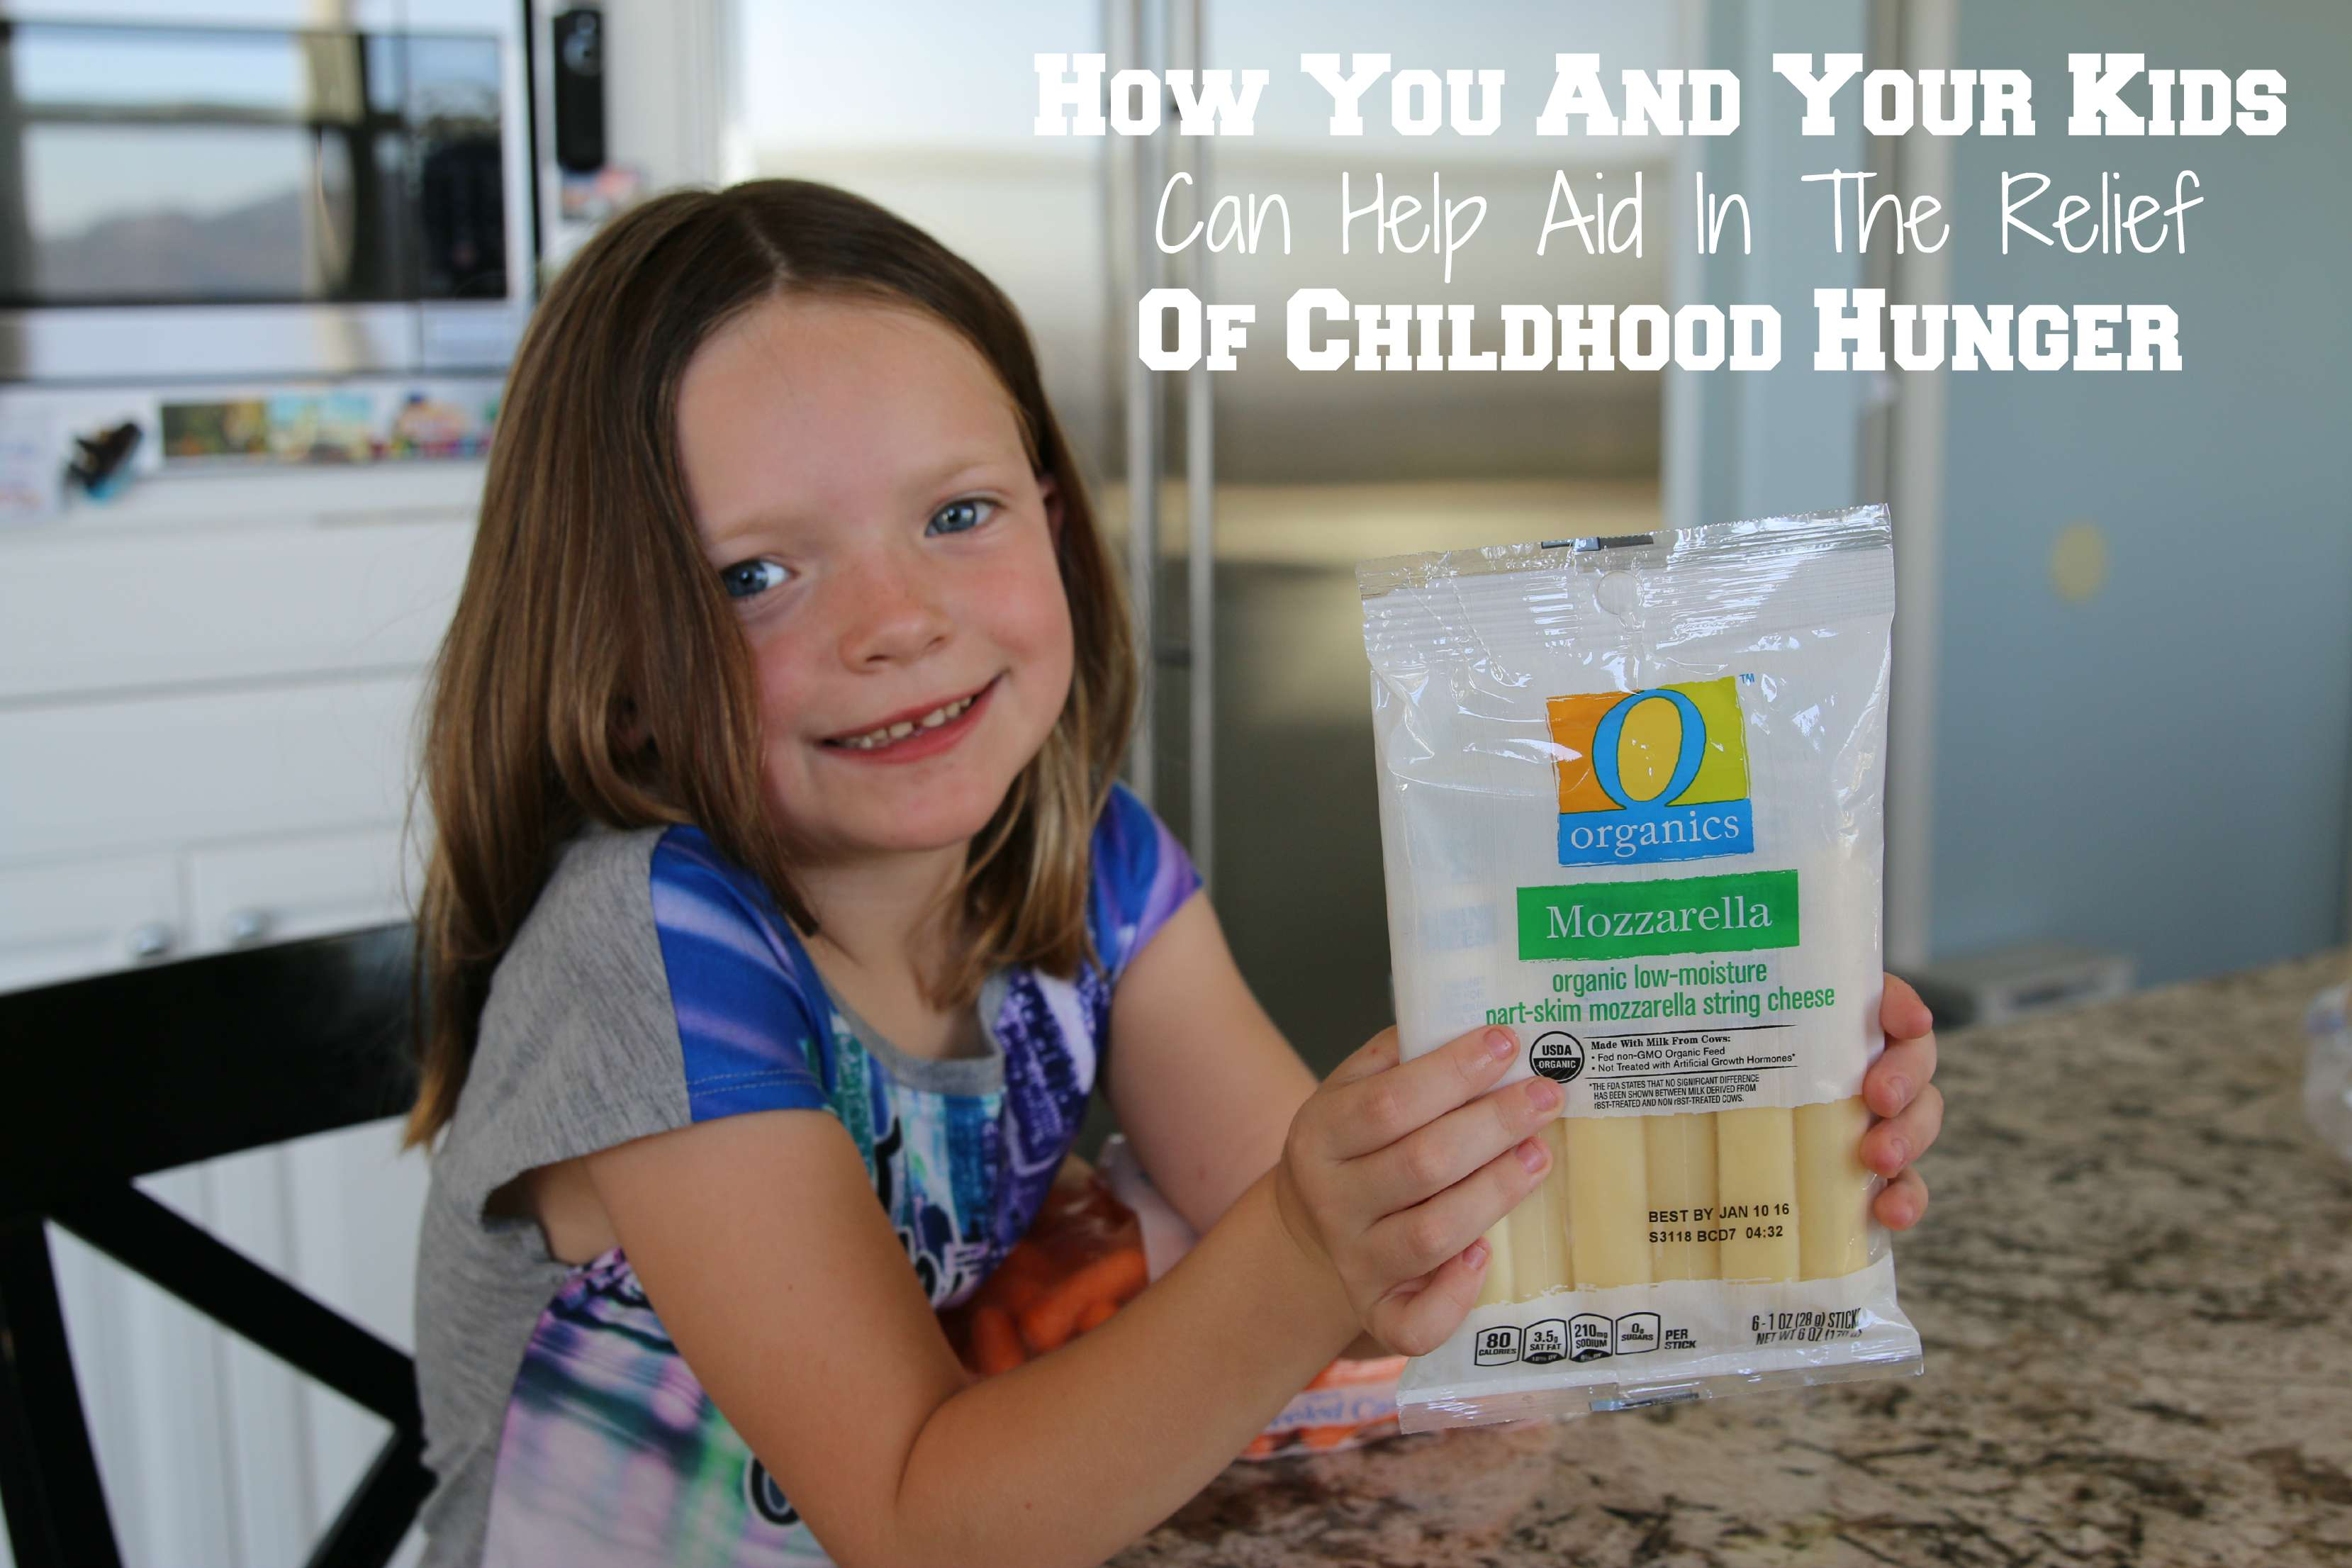 help aid in the relief of childhood hunger